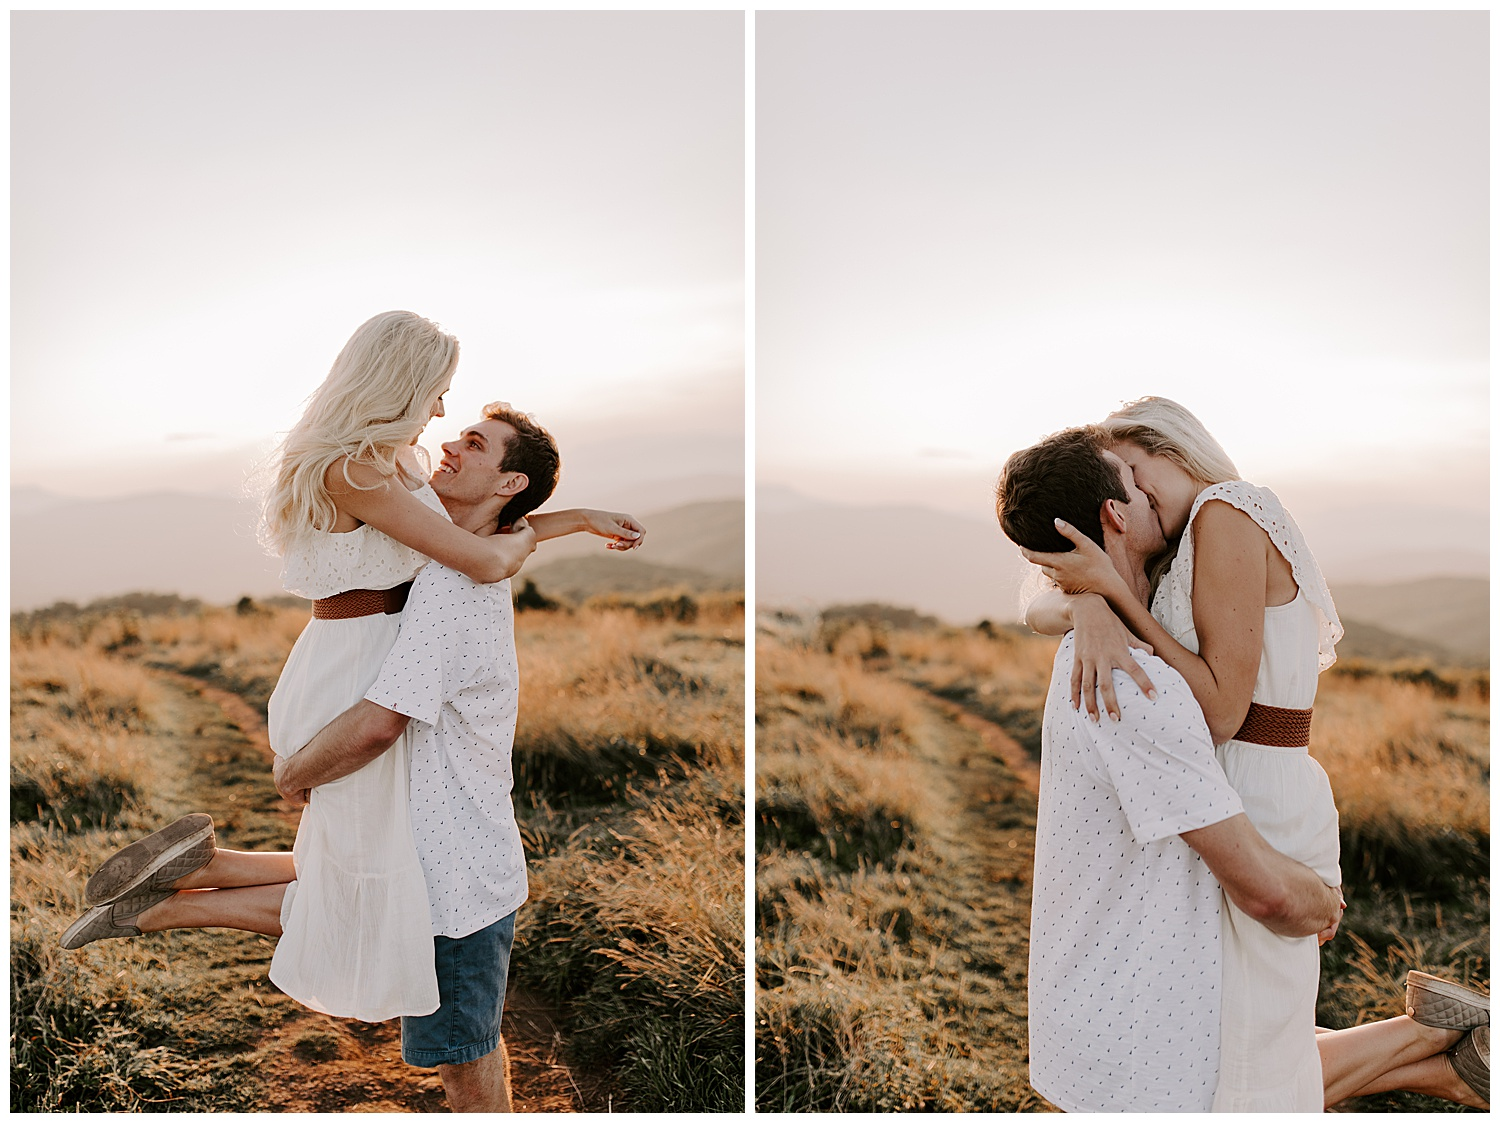 HANNAH_NICK_MAXPATCH_ENGAGEMENT2019-09-05_0019.jpg